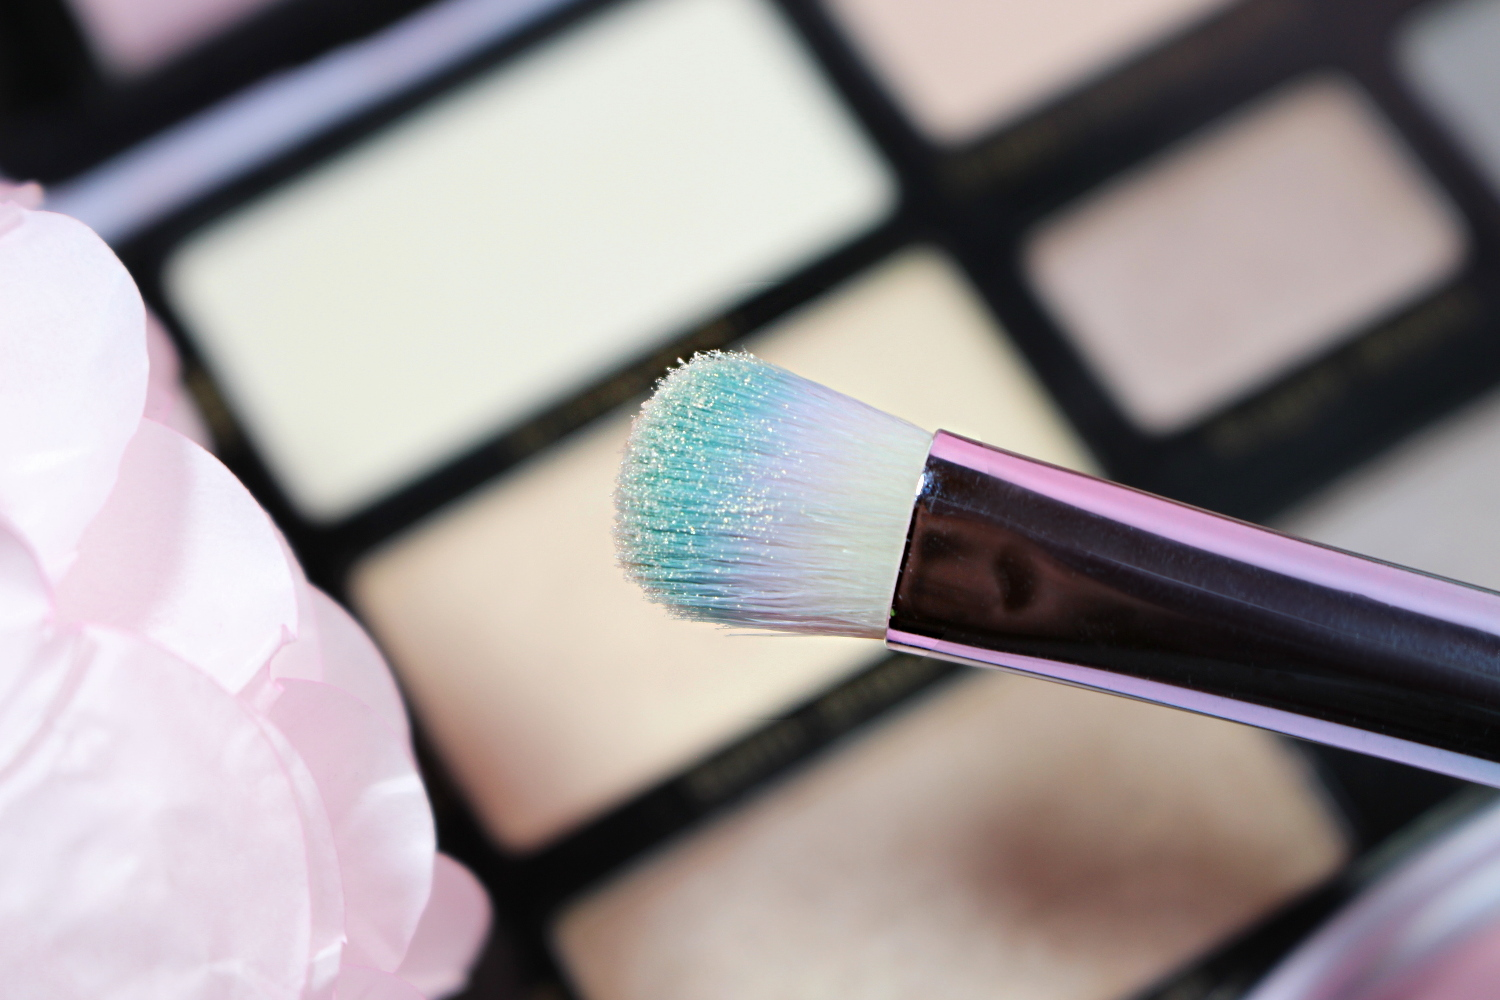 docolor brushes buy online pictures  budget affordable makeup